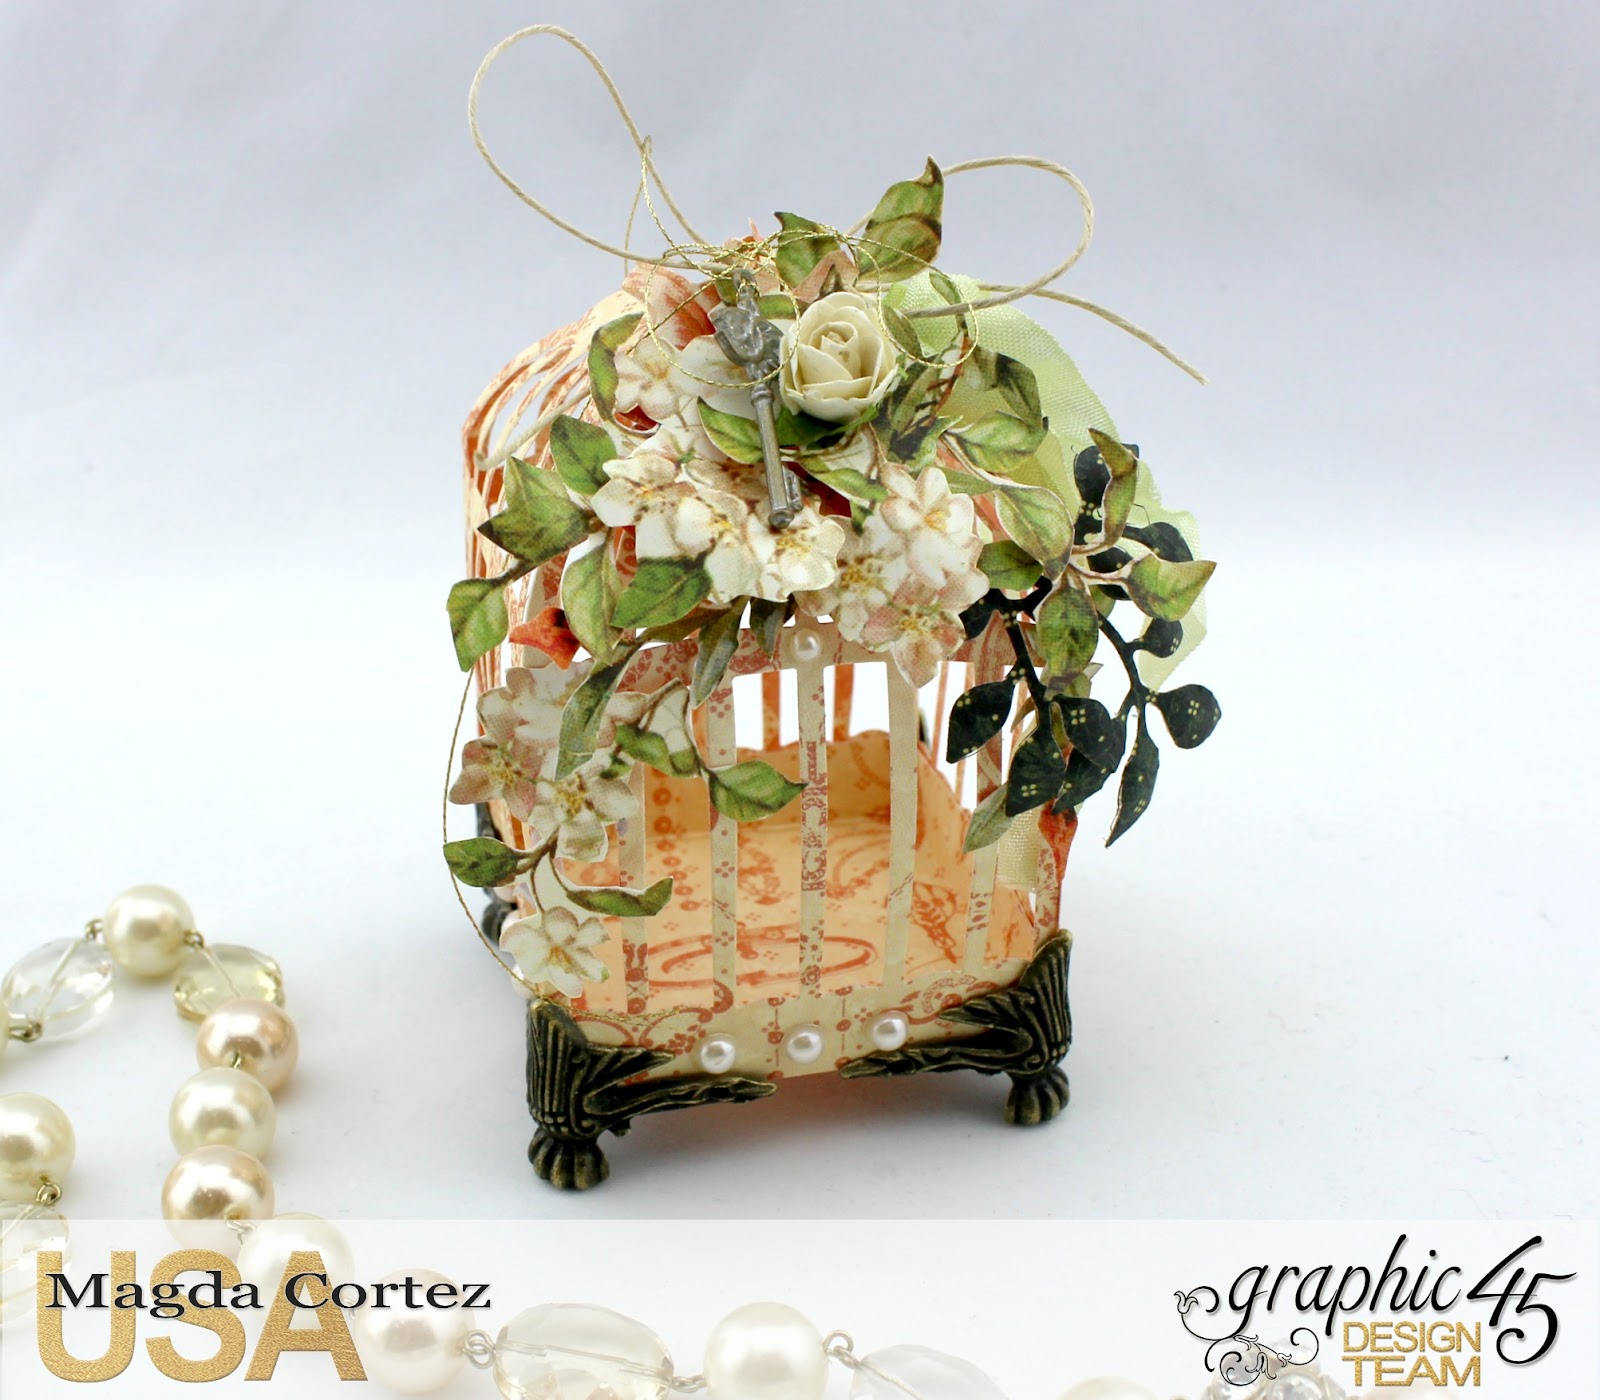 3D Birdcages Simply 45-Wedding Favor- Secret Garden By Magda Cortez, Product By G45, Photo 02 of 06, Project with Tutorial.jpg